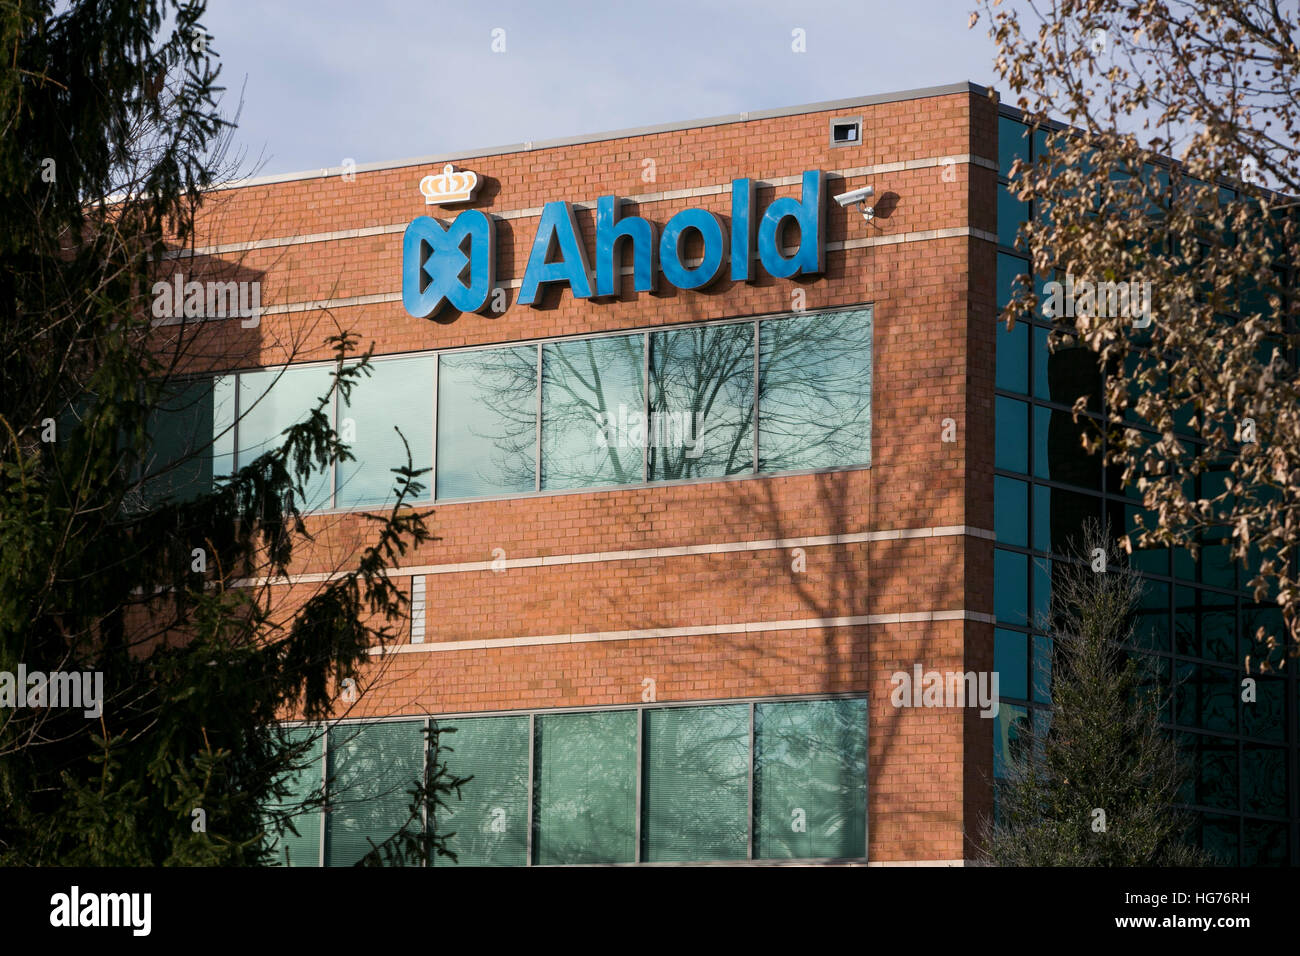 A logo sign outside of a facility occupied by Koninklijke Ahold in Chantilly, Virginia on December 31, 2016. - Stock Image